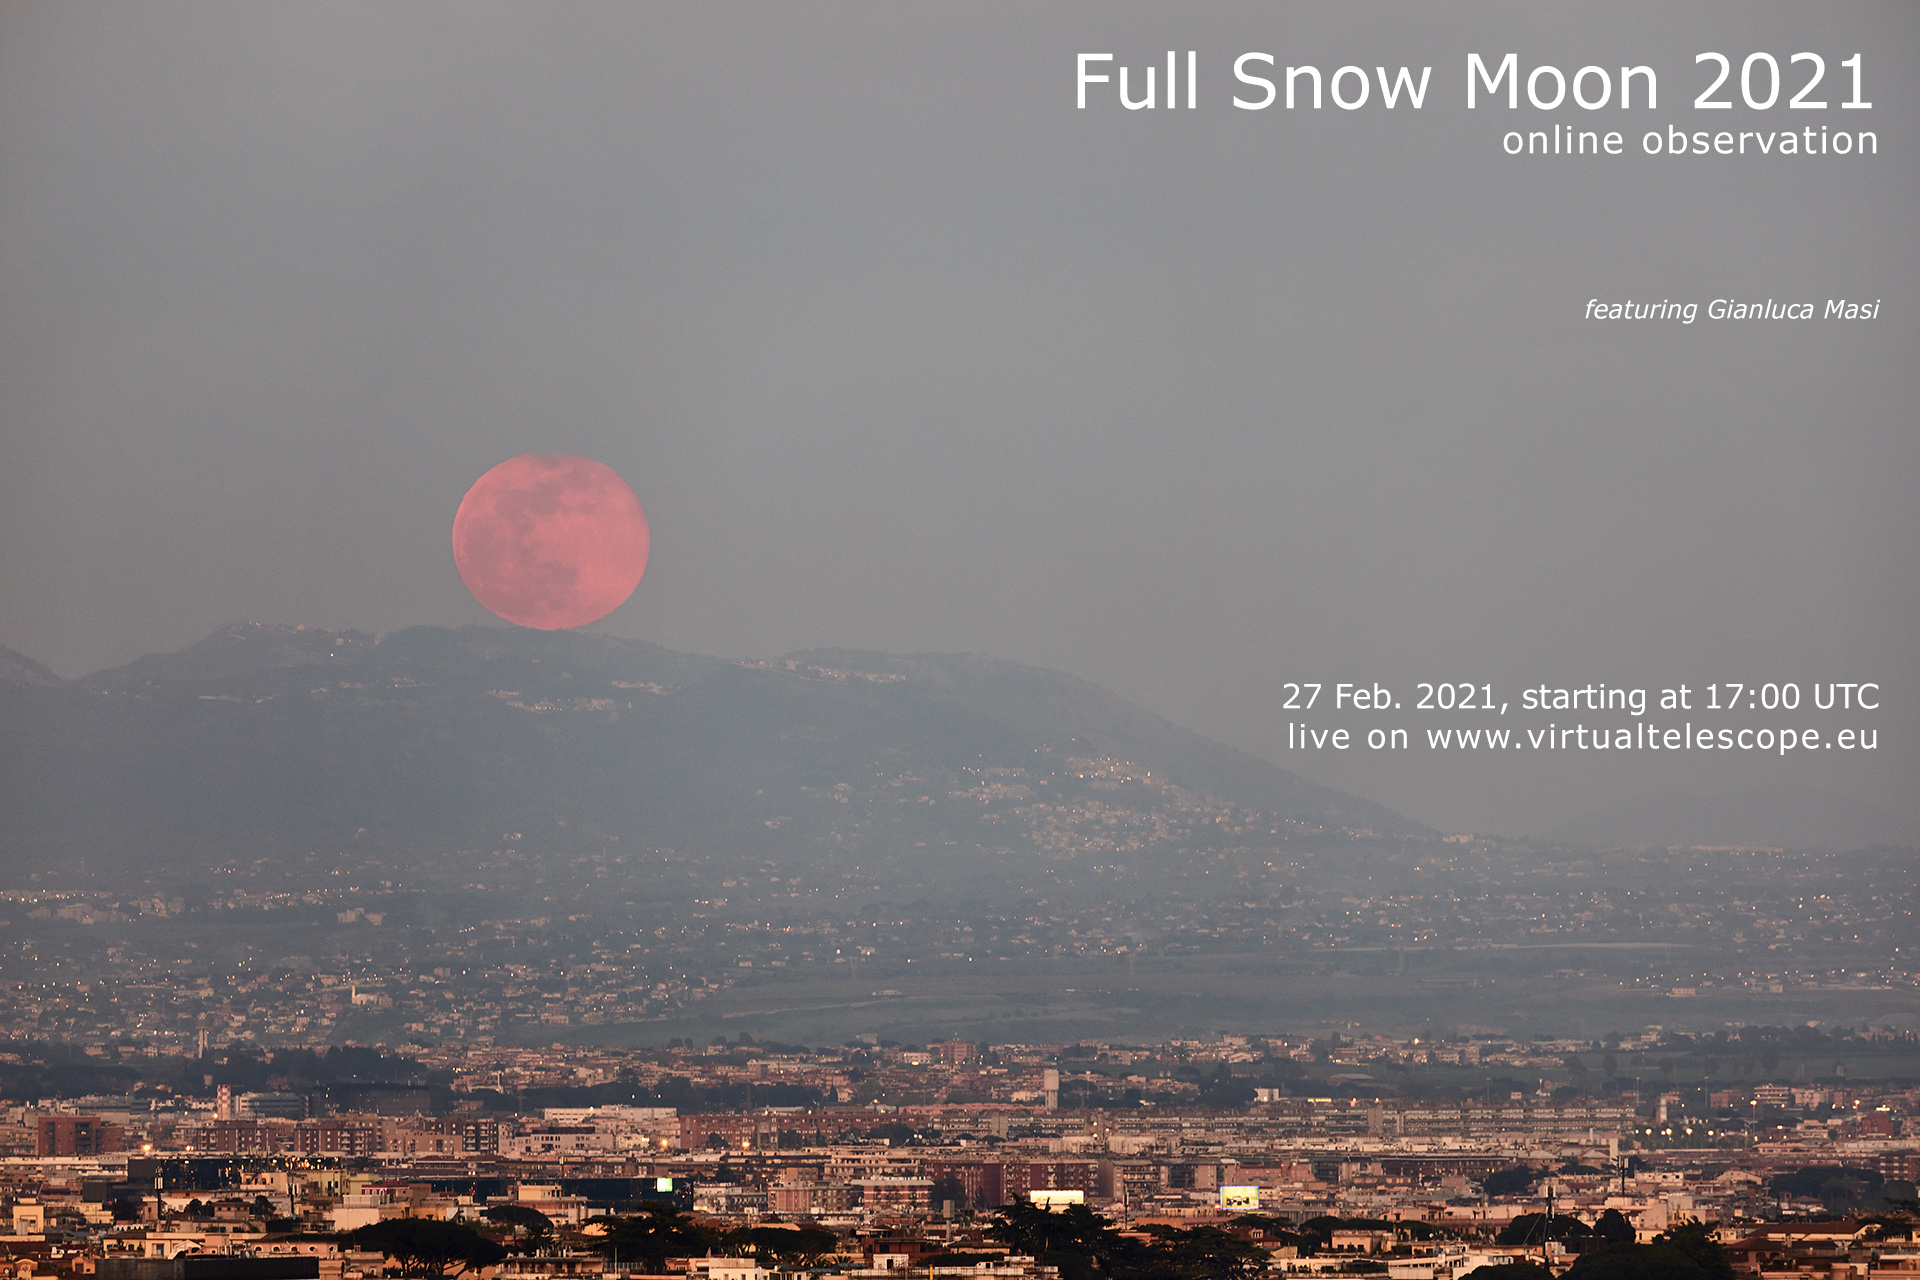 Full Snow Moon 2021: poster of the event